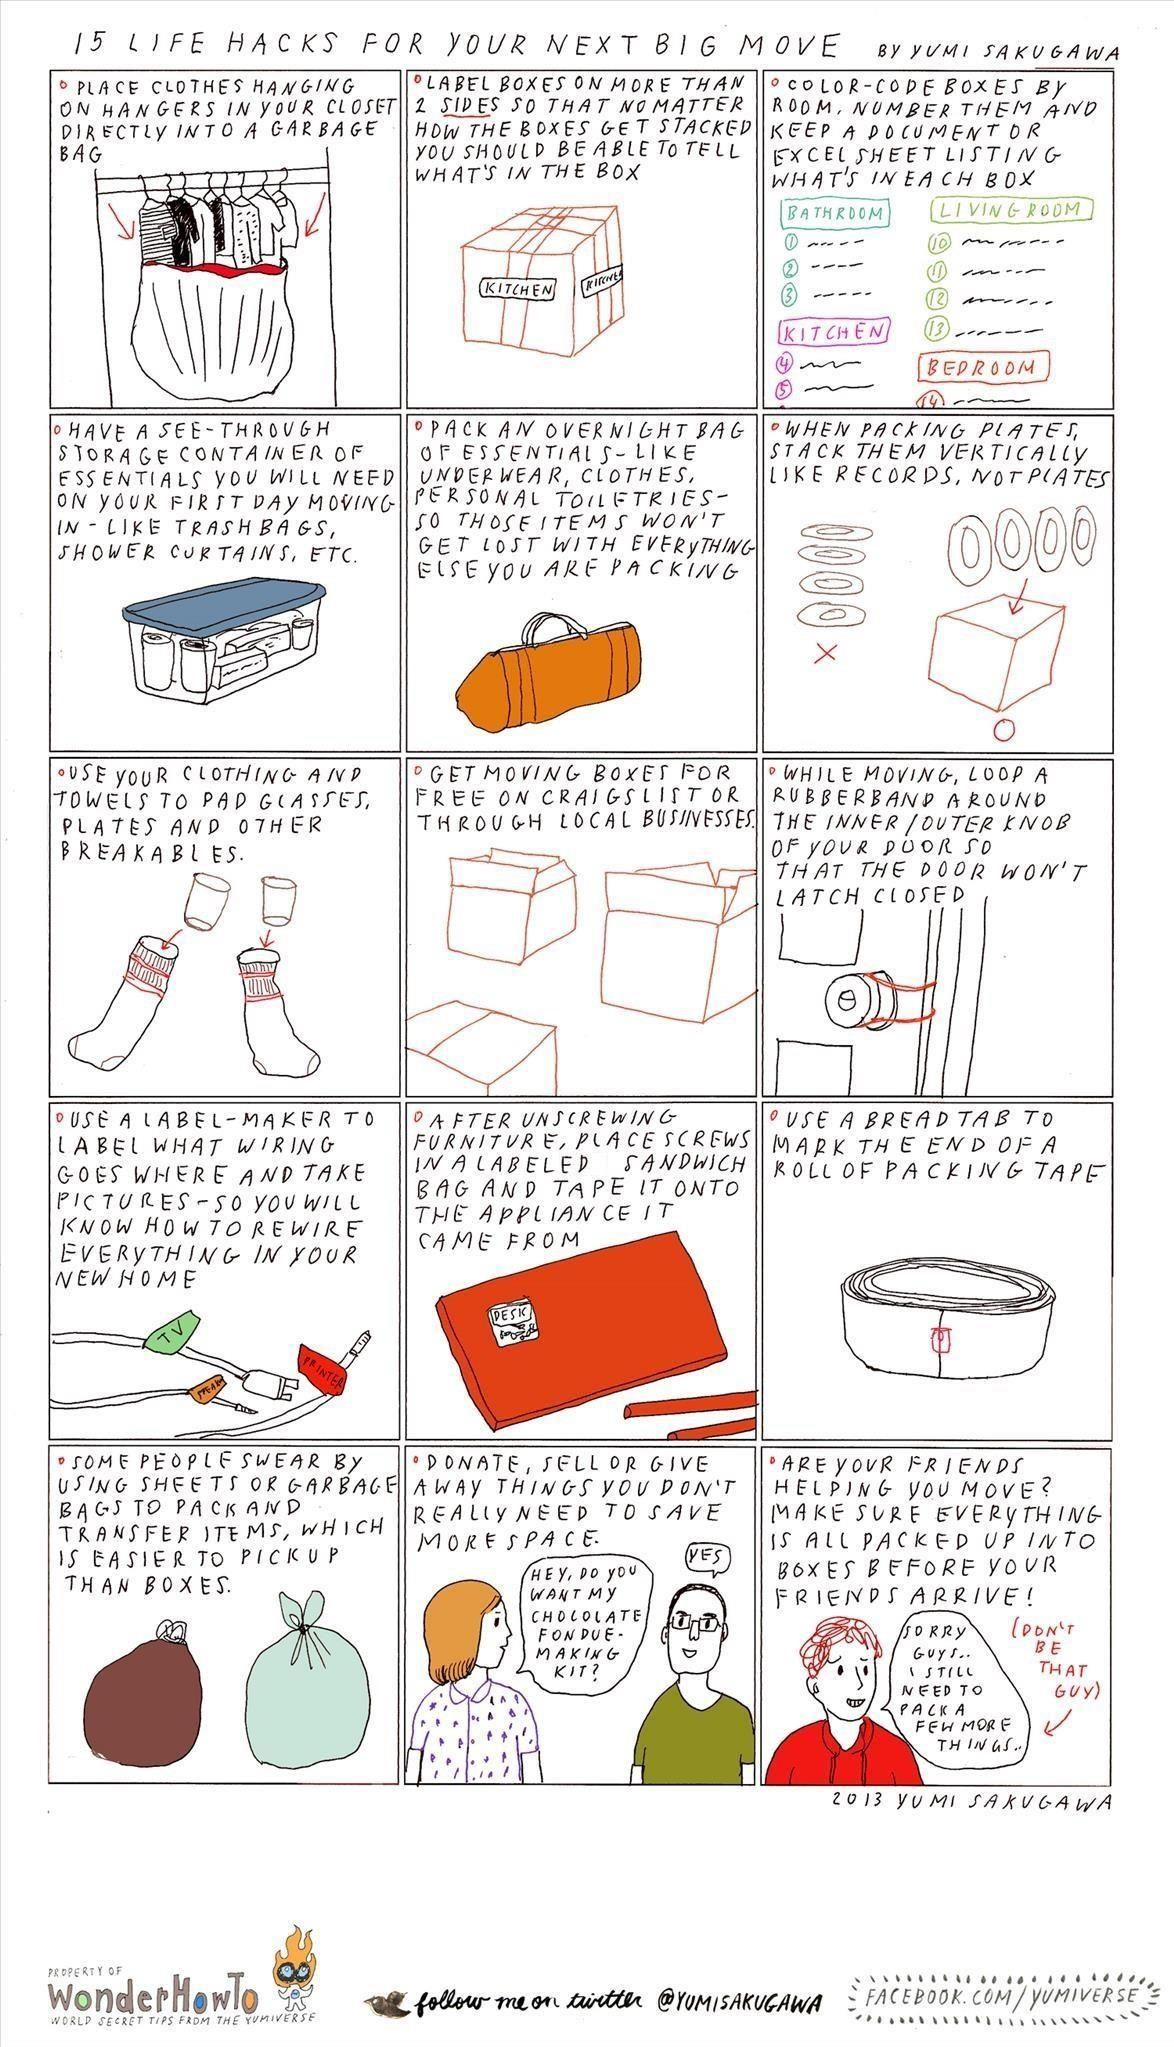 15 Life Hacks For Your Next Big Move The Secret Yumiverse